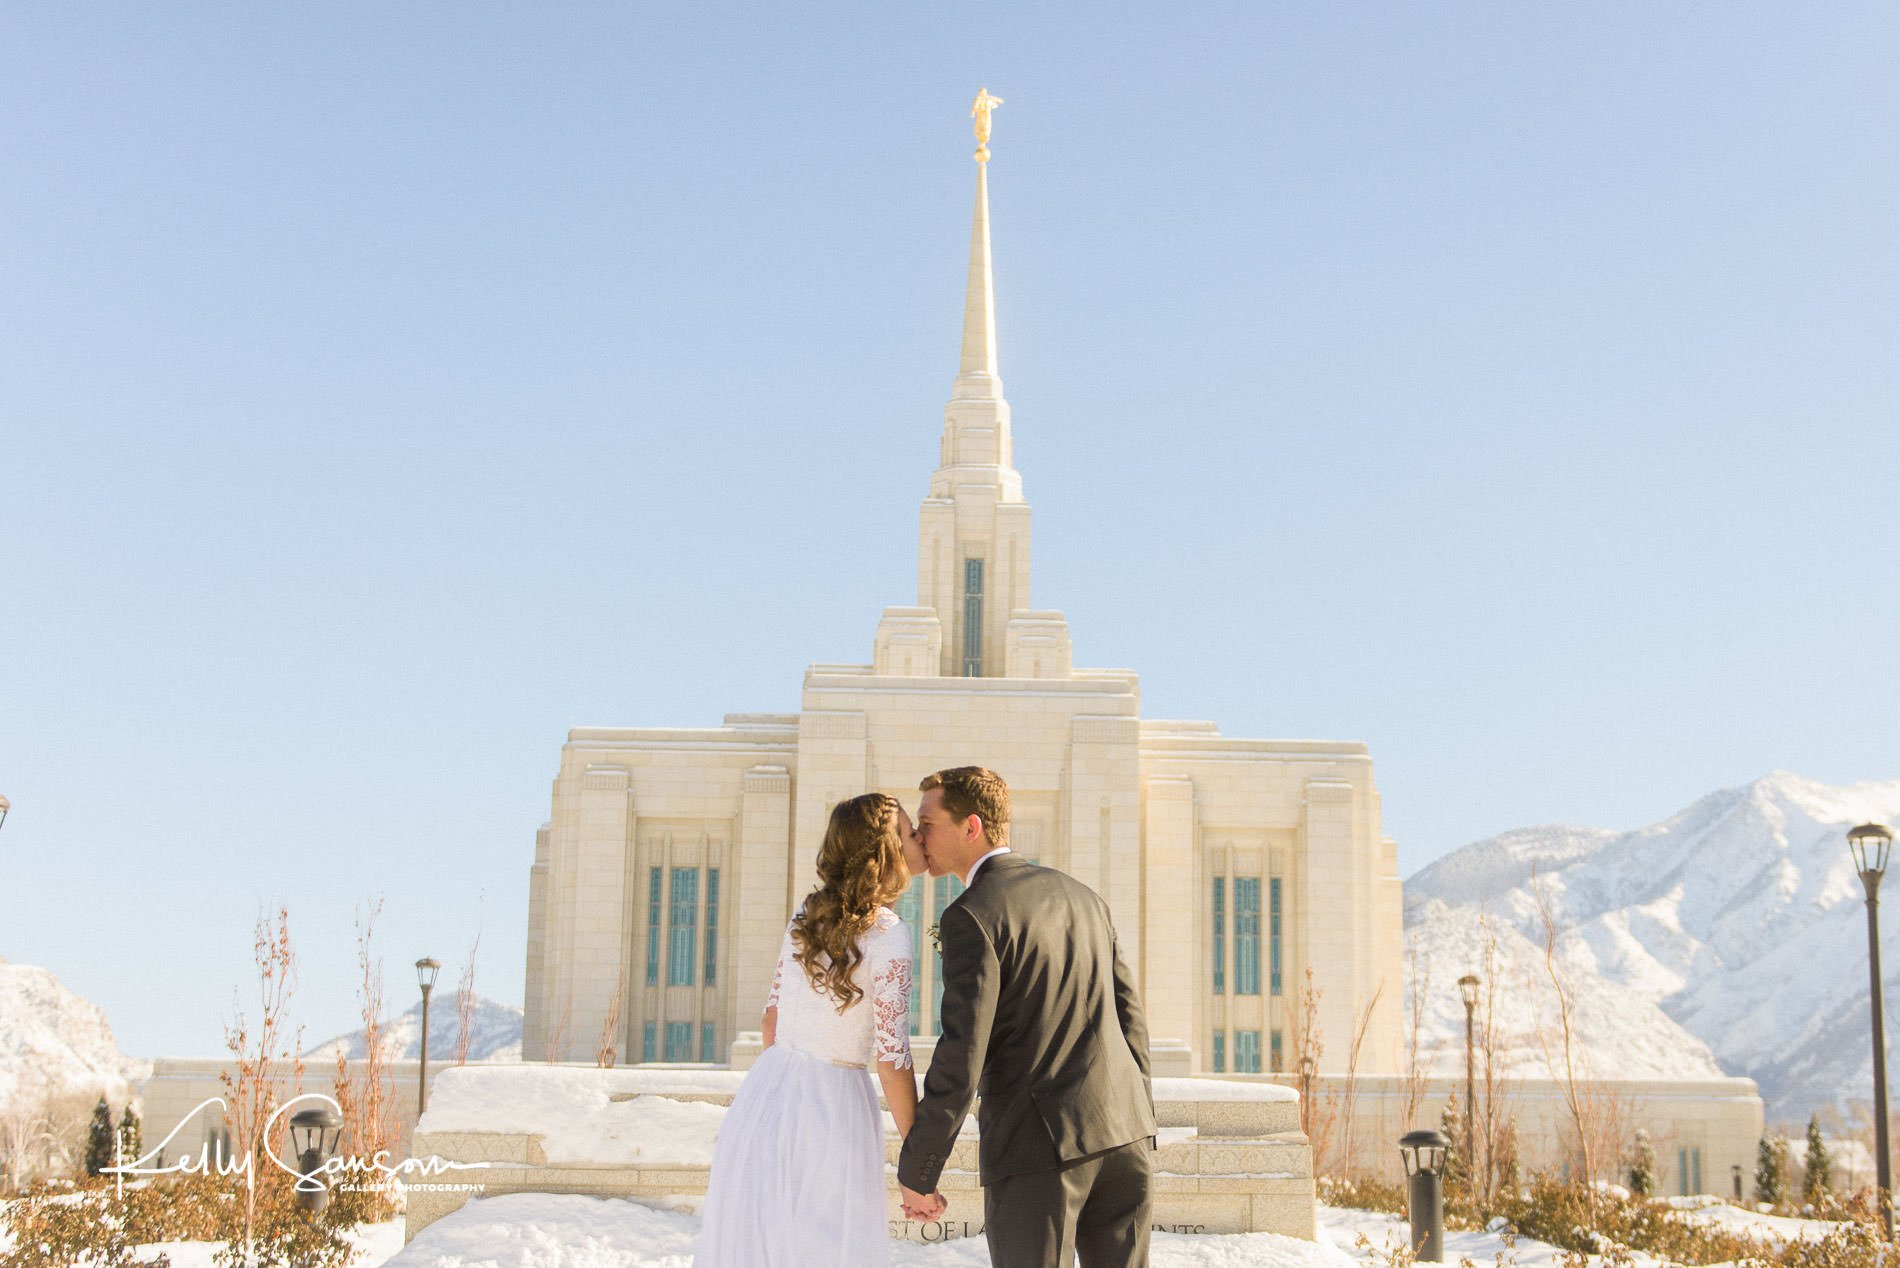 A bride and groom lean together to kiss with the backs to us for Ogden LDS temple wedding photography.